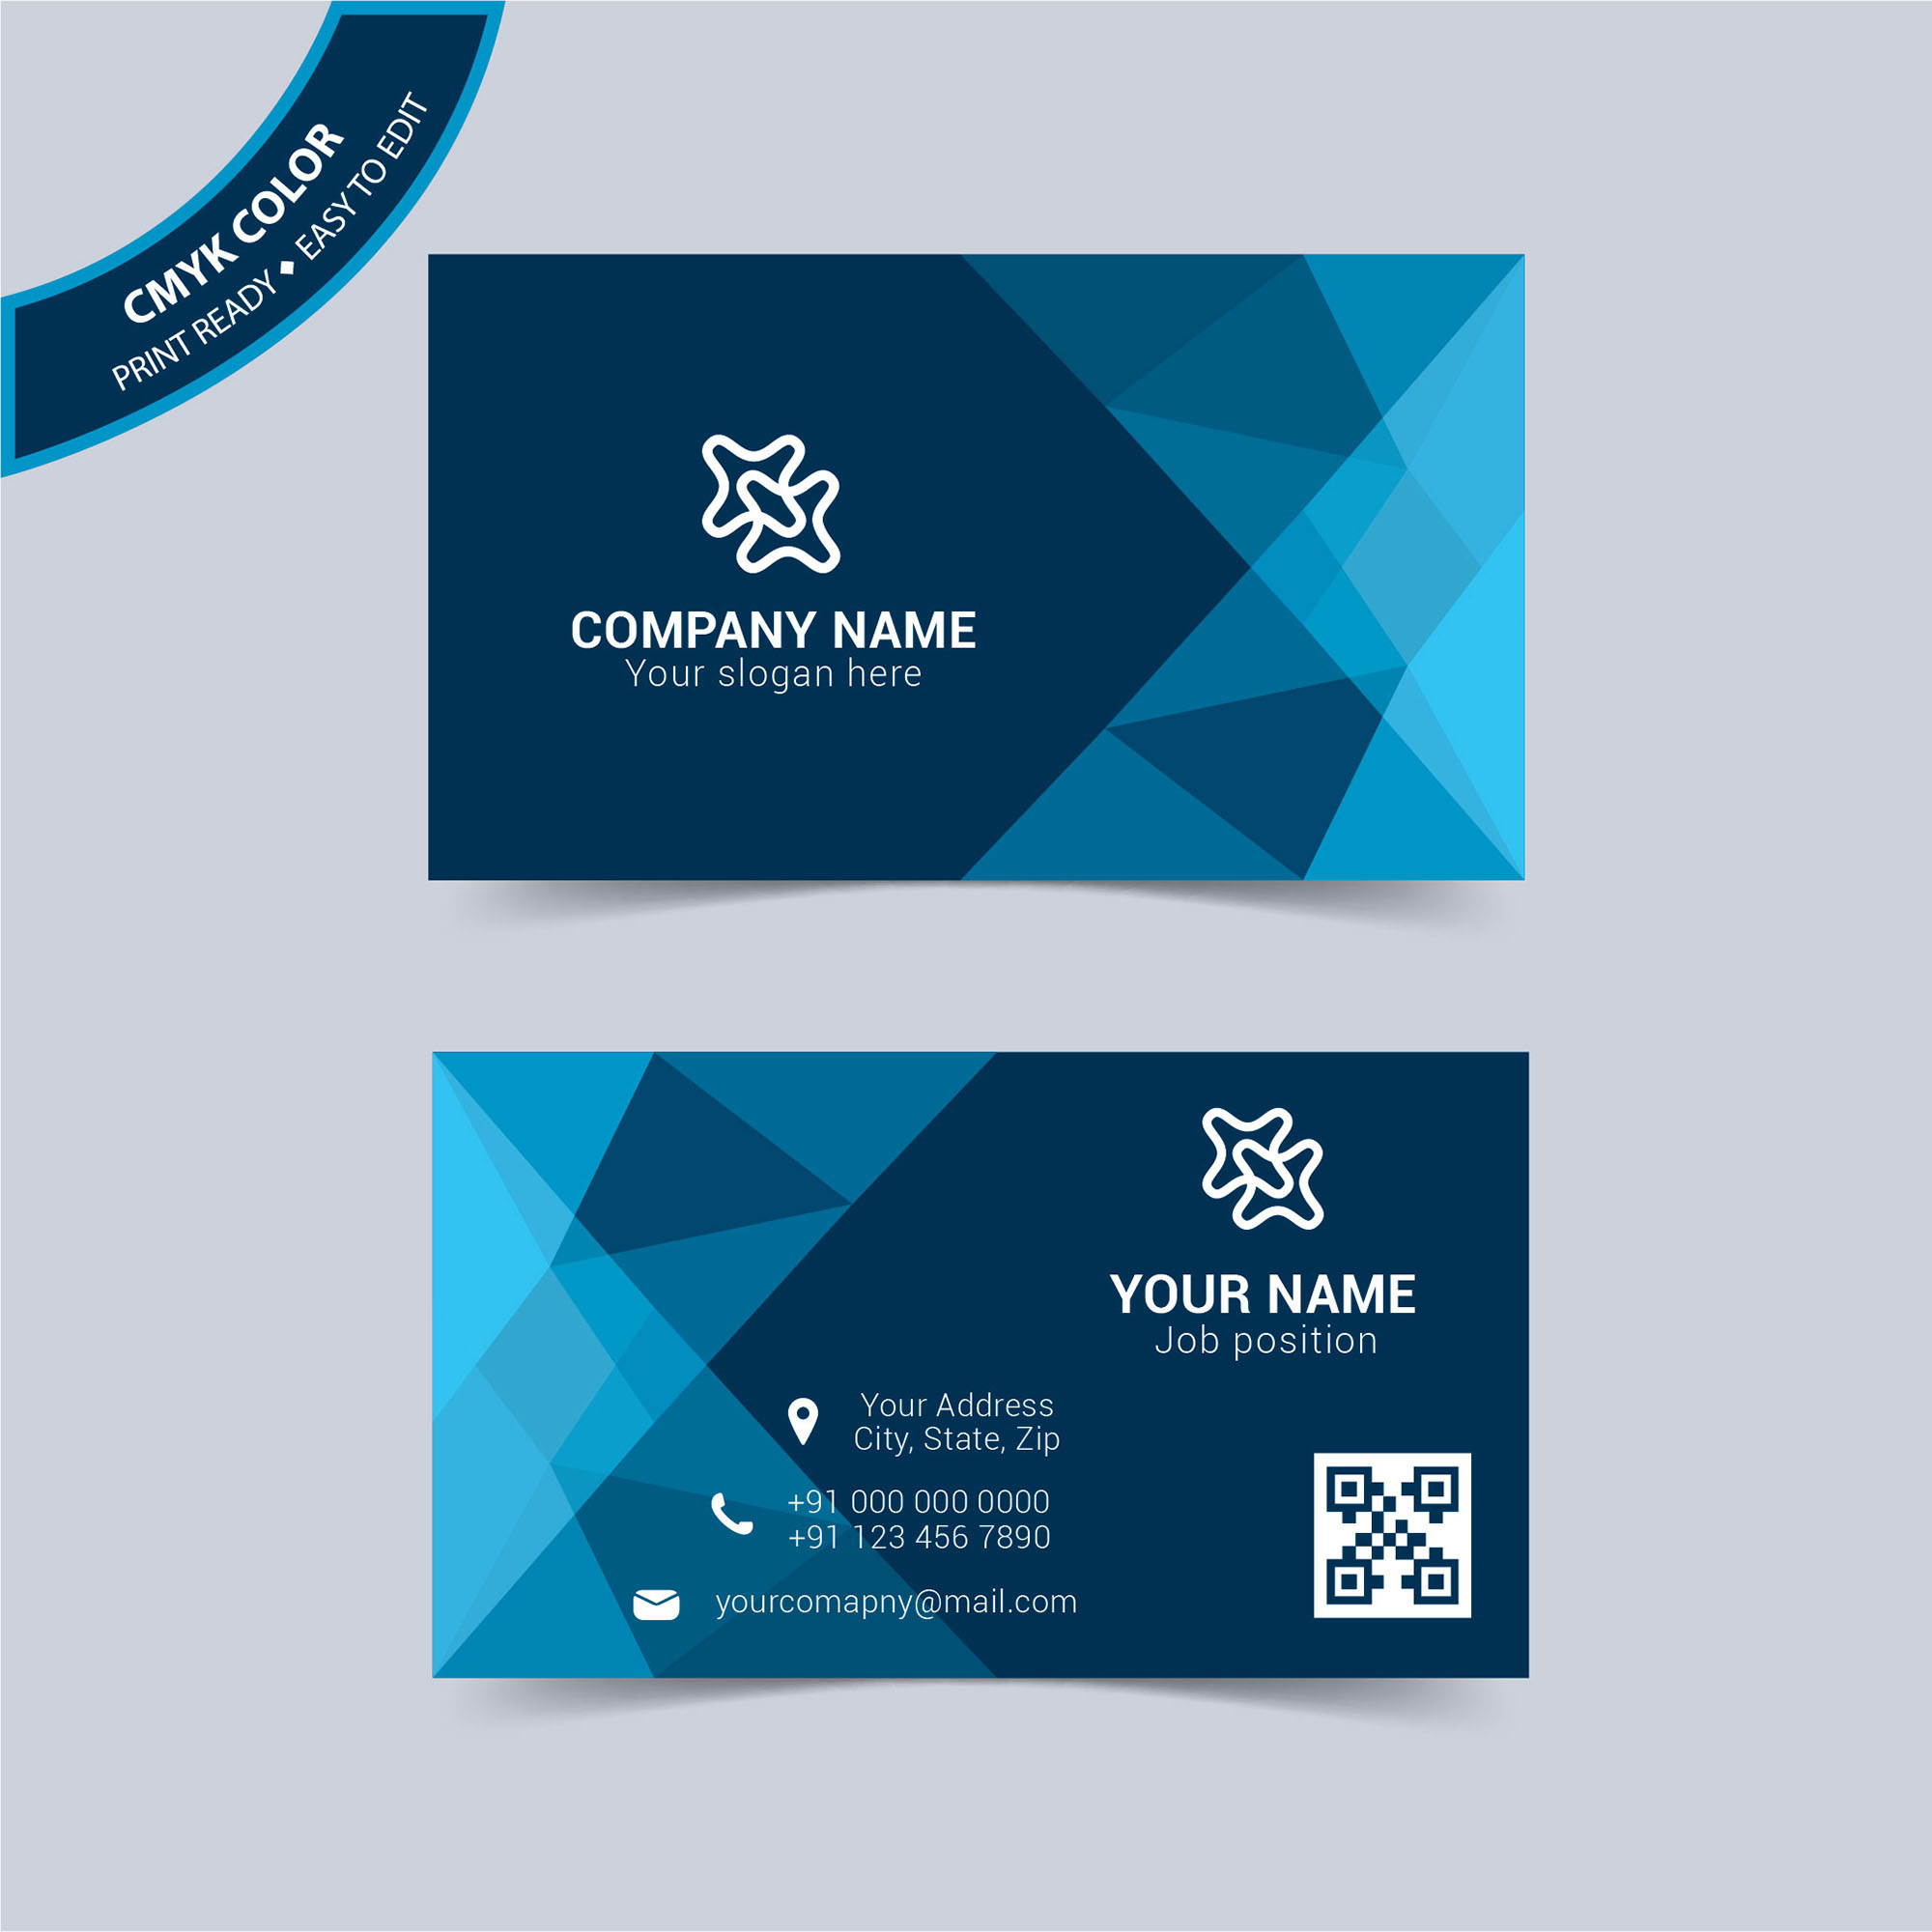 Creative corporate business card design free download wisxi business card business cards business card design business card template design templates cheaphphosting Images